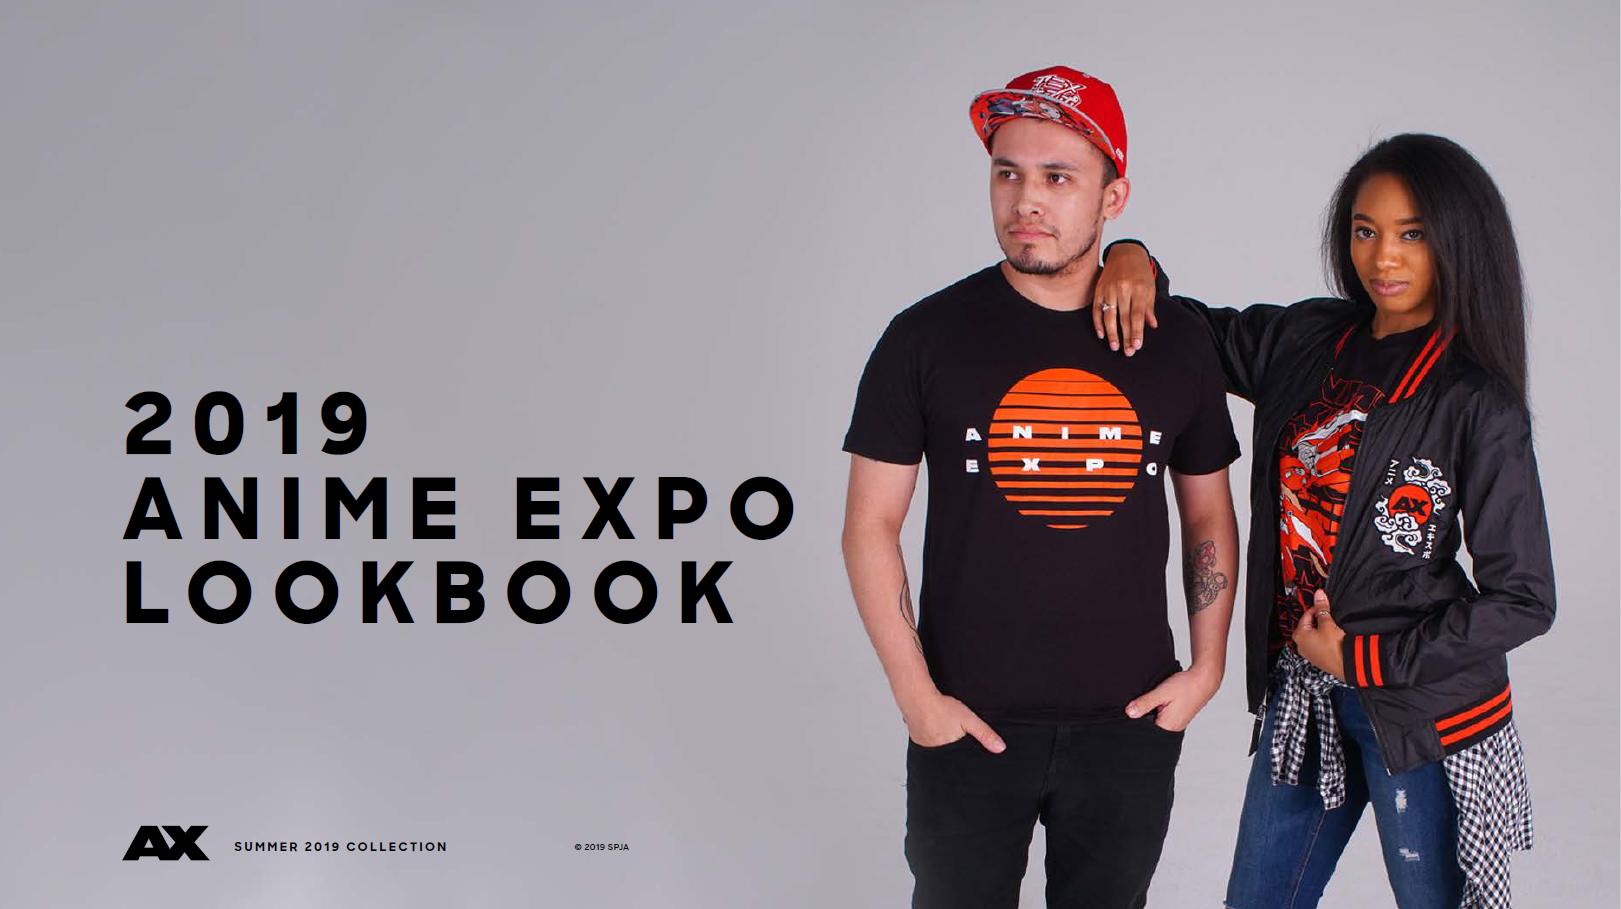 Official AX Merchandise - Anime Expo